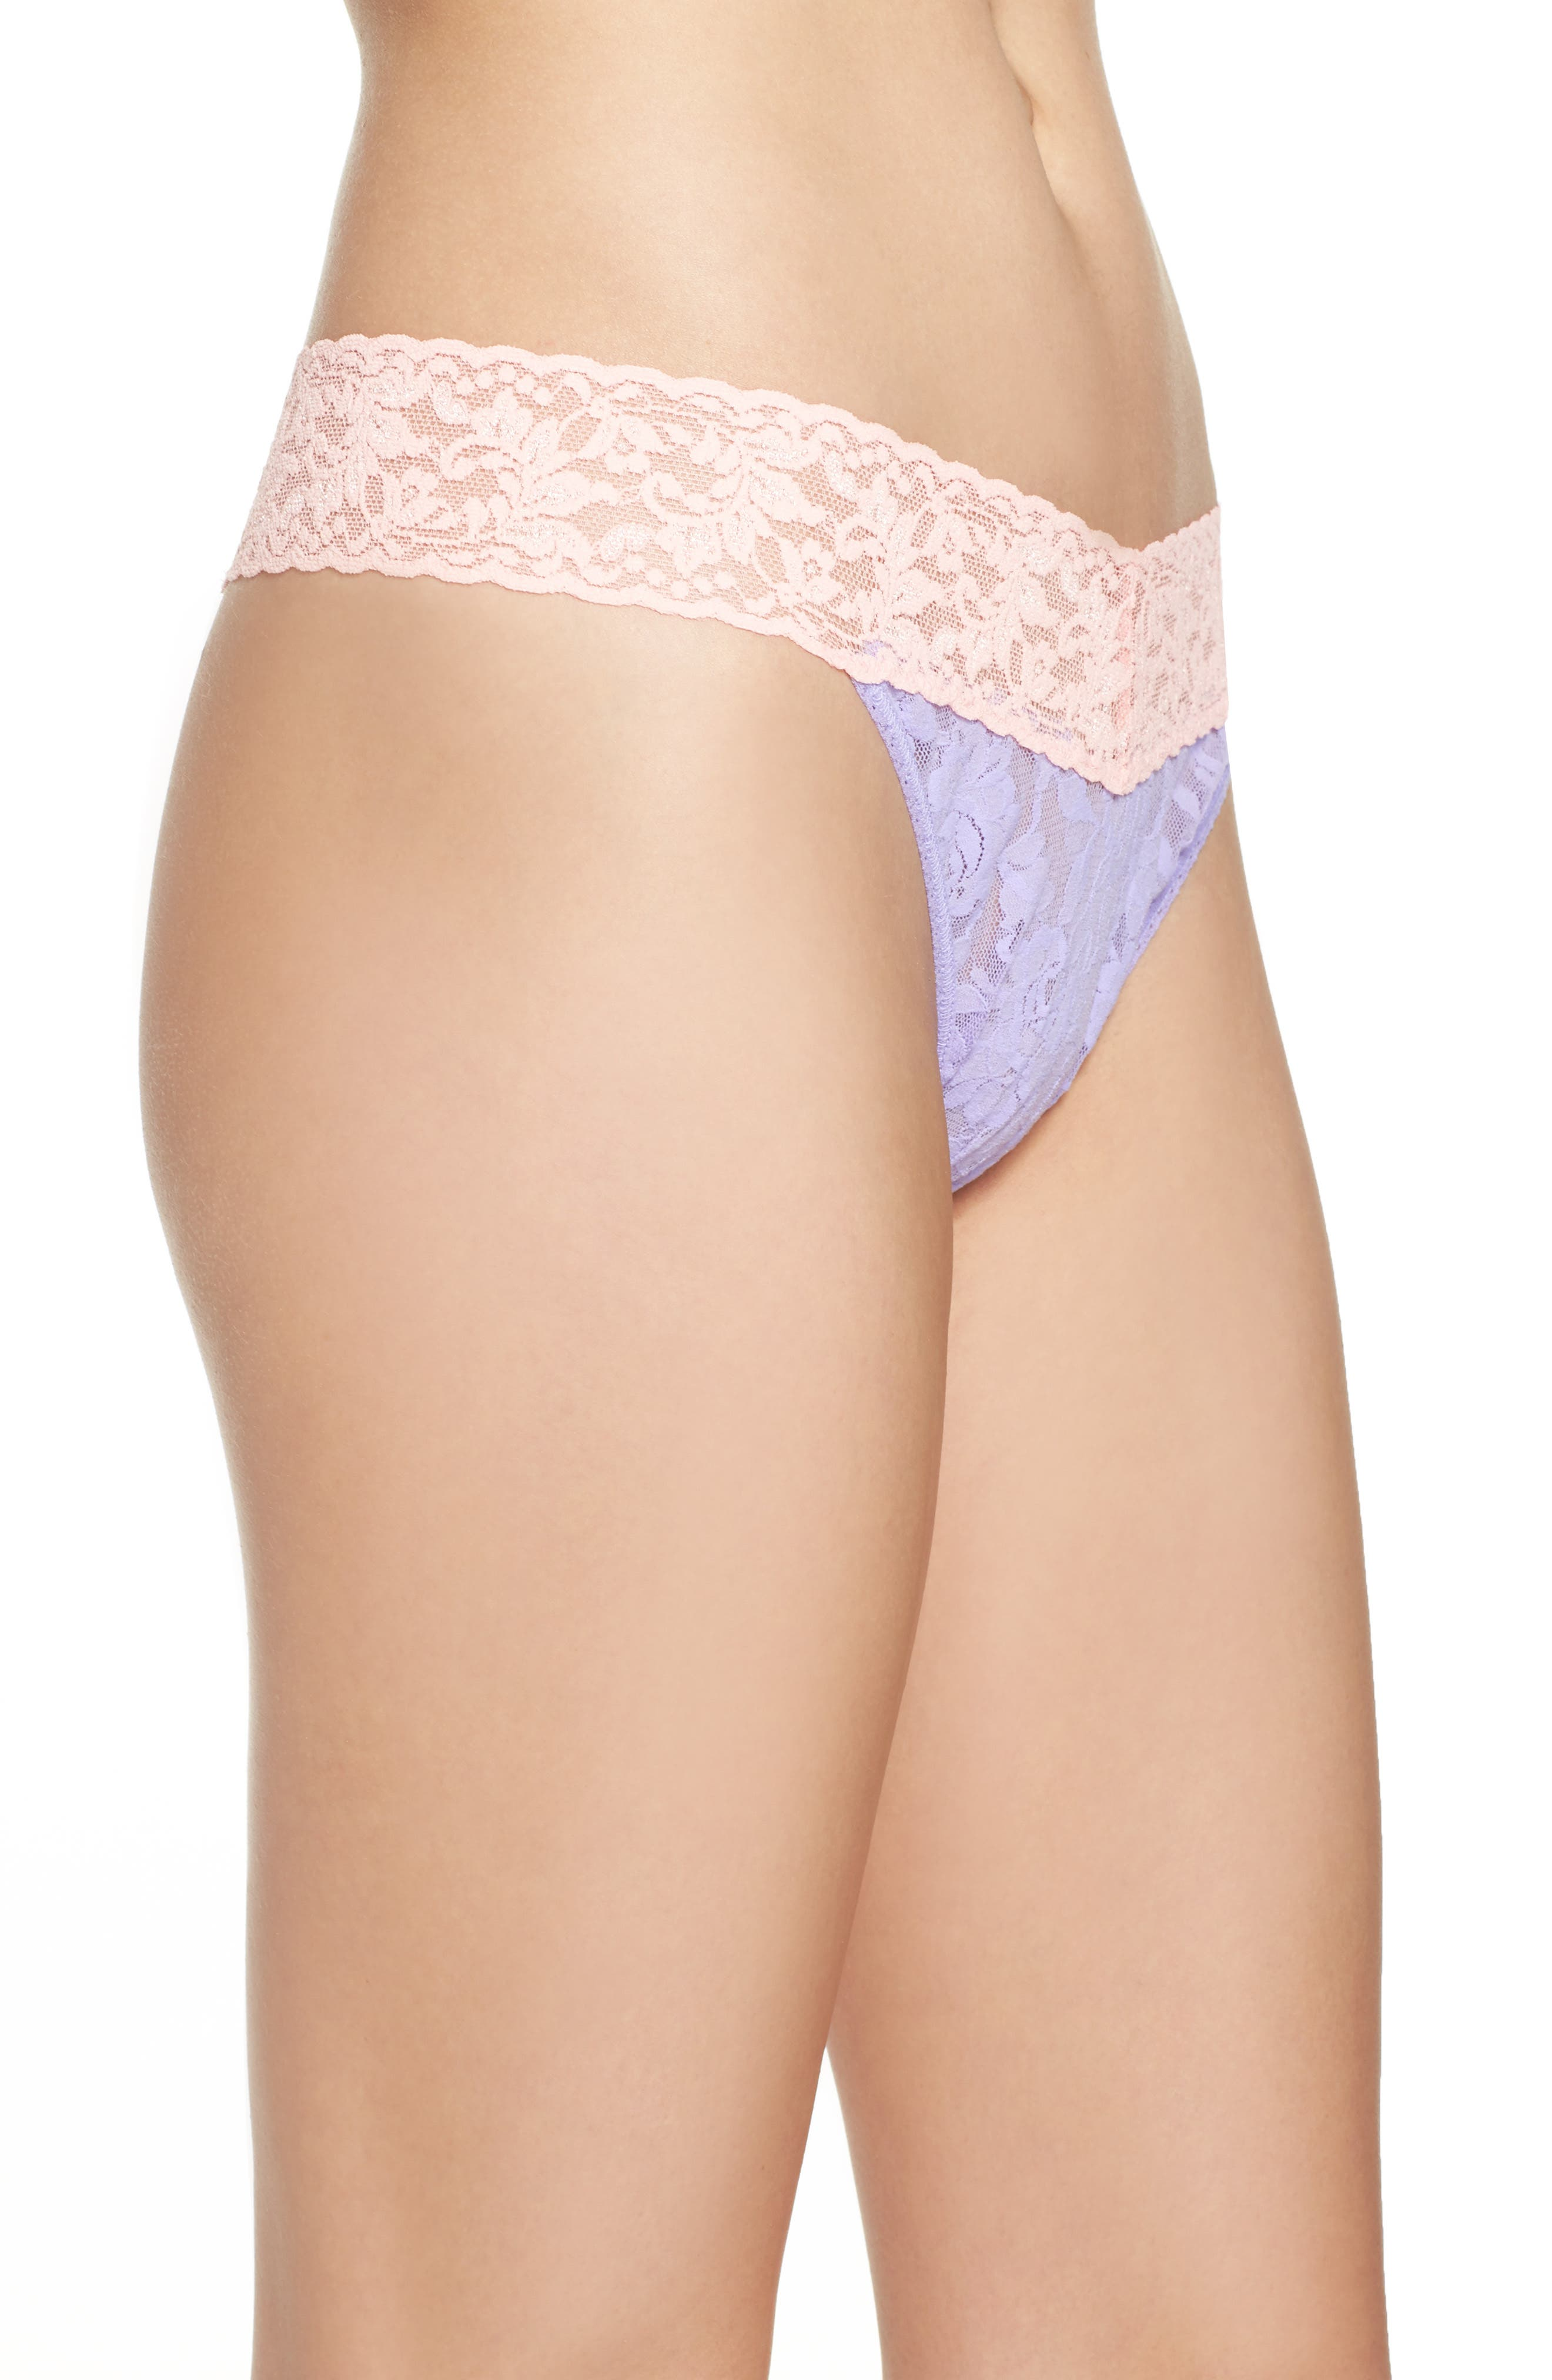 Alternate Image 3  - Hanky Panky 'Colorplay' Regular Rise Thong